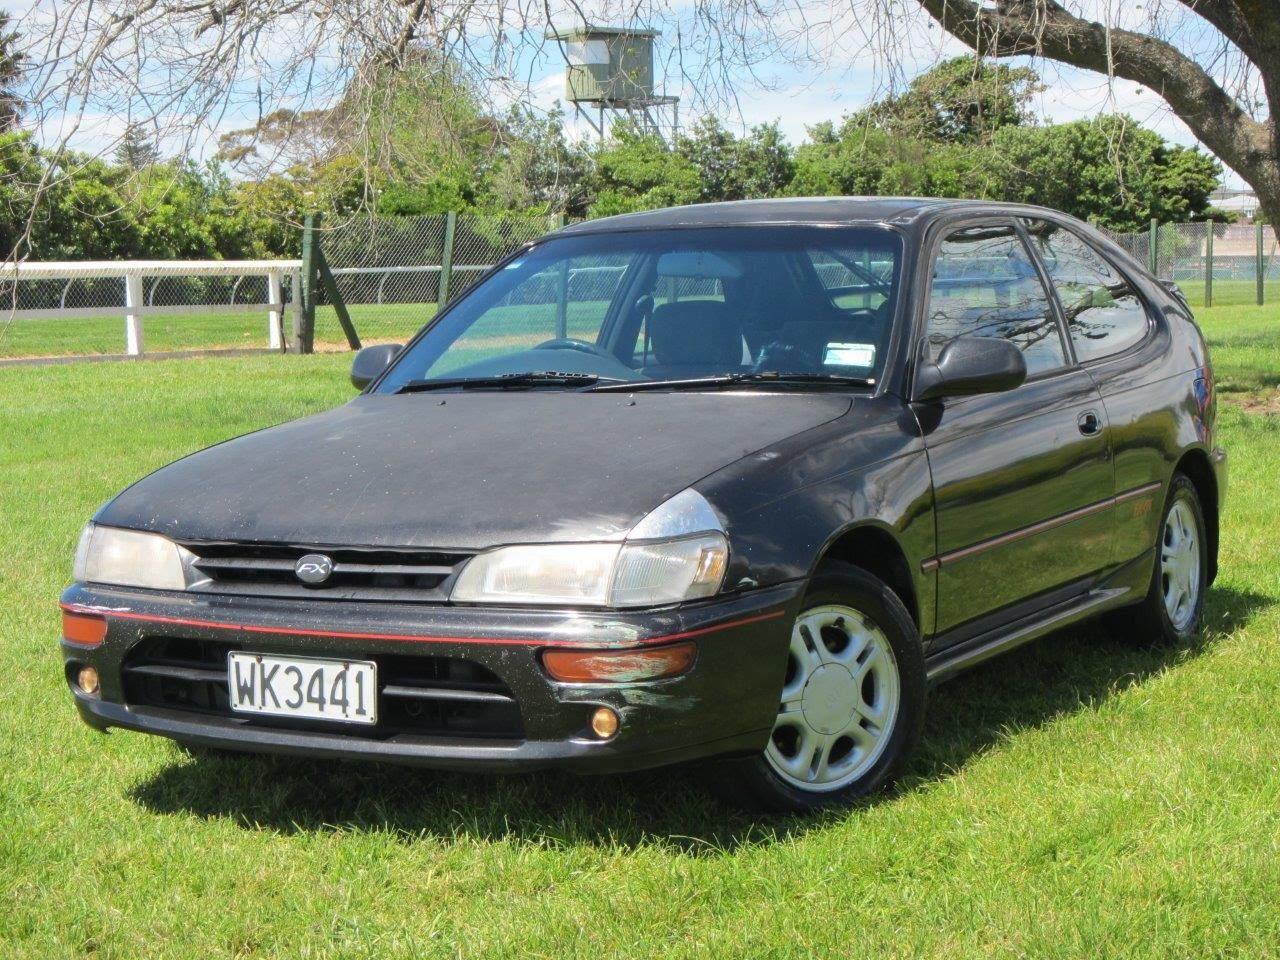 1995 toyota corolla liftback e10 pictures information and specs auto. Black Bedroom Furniture Sets. Home Design Ideas